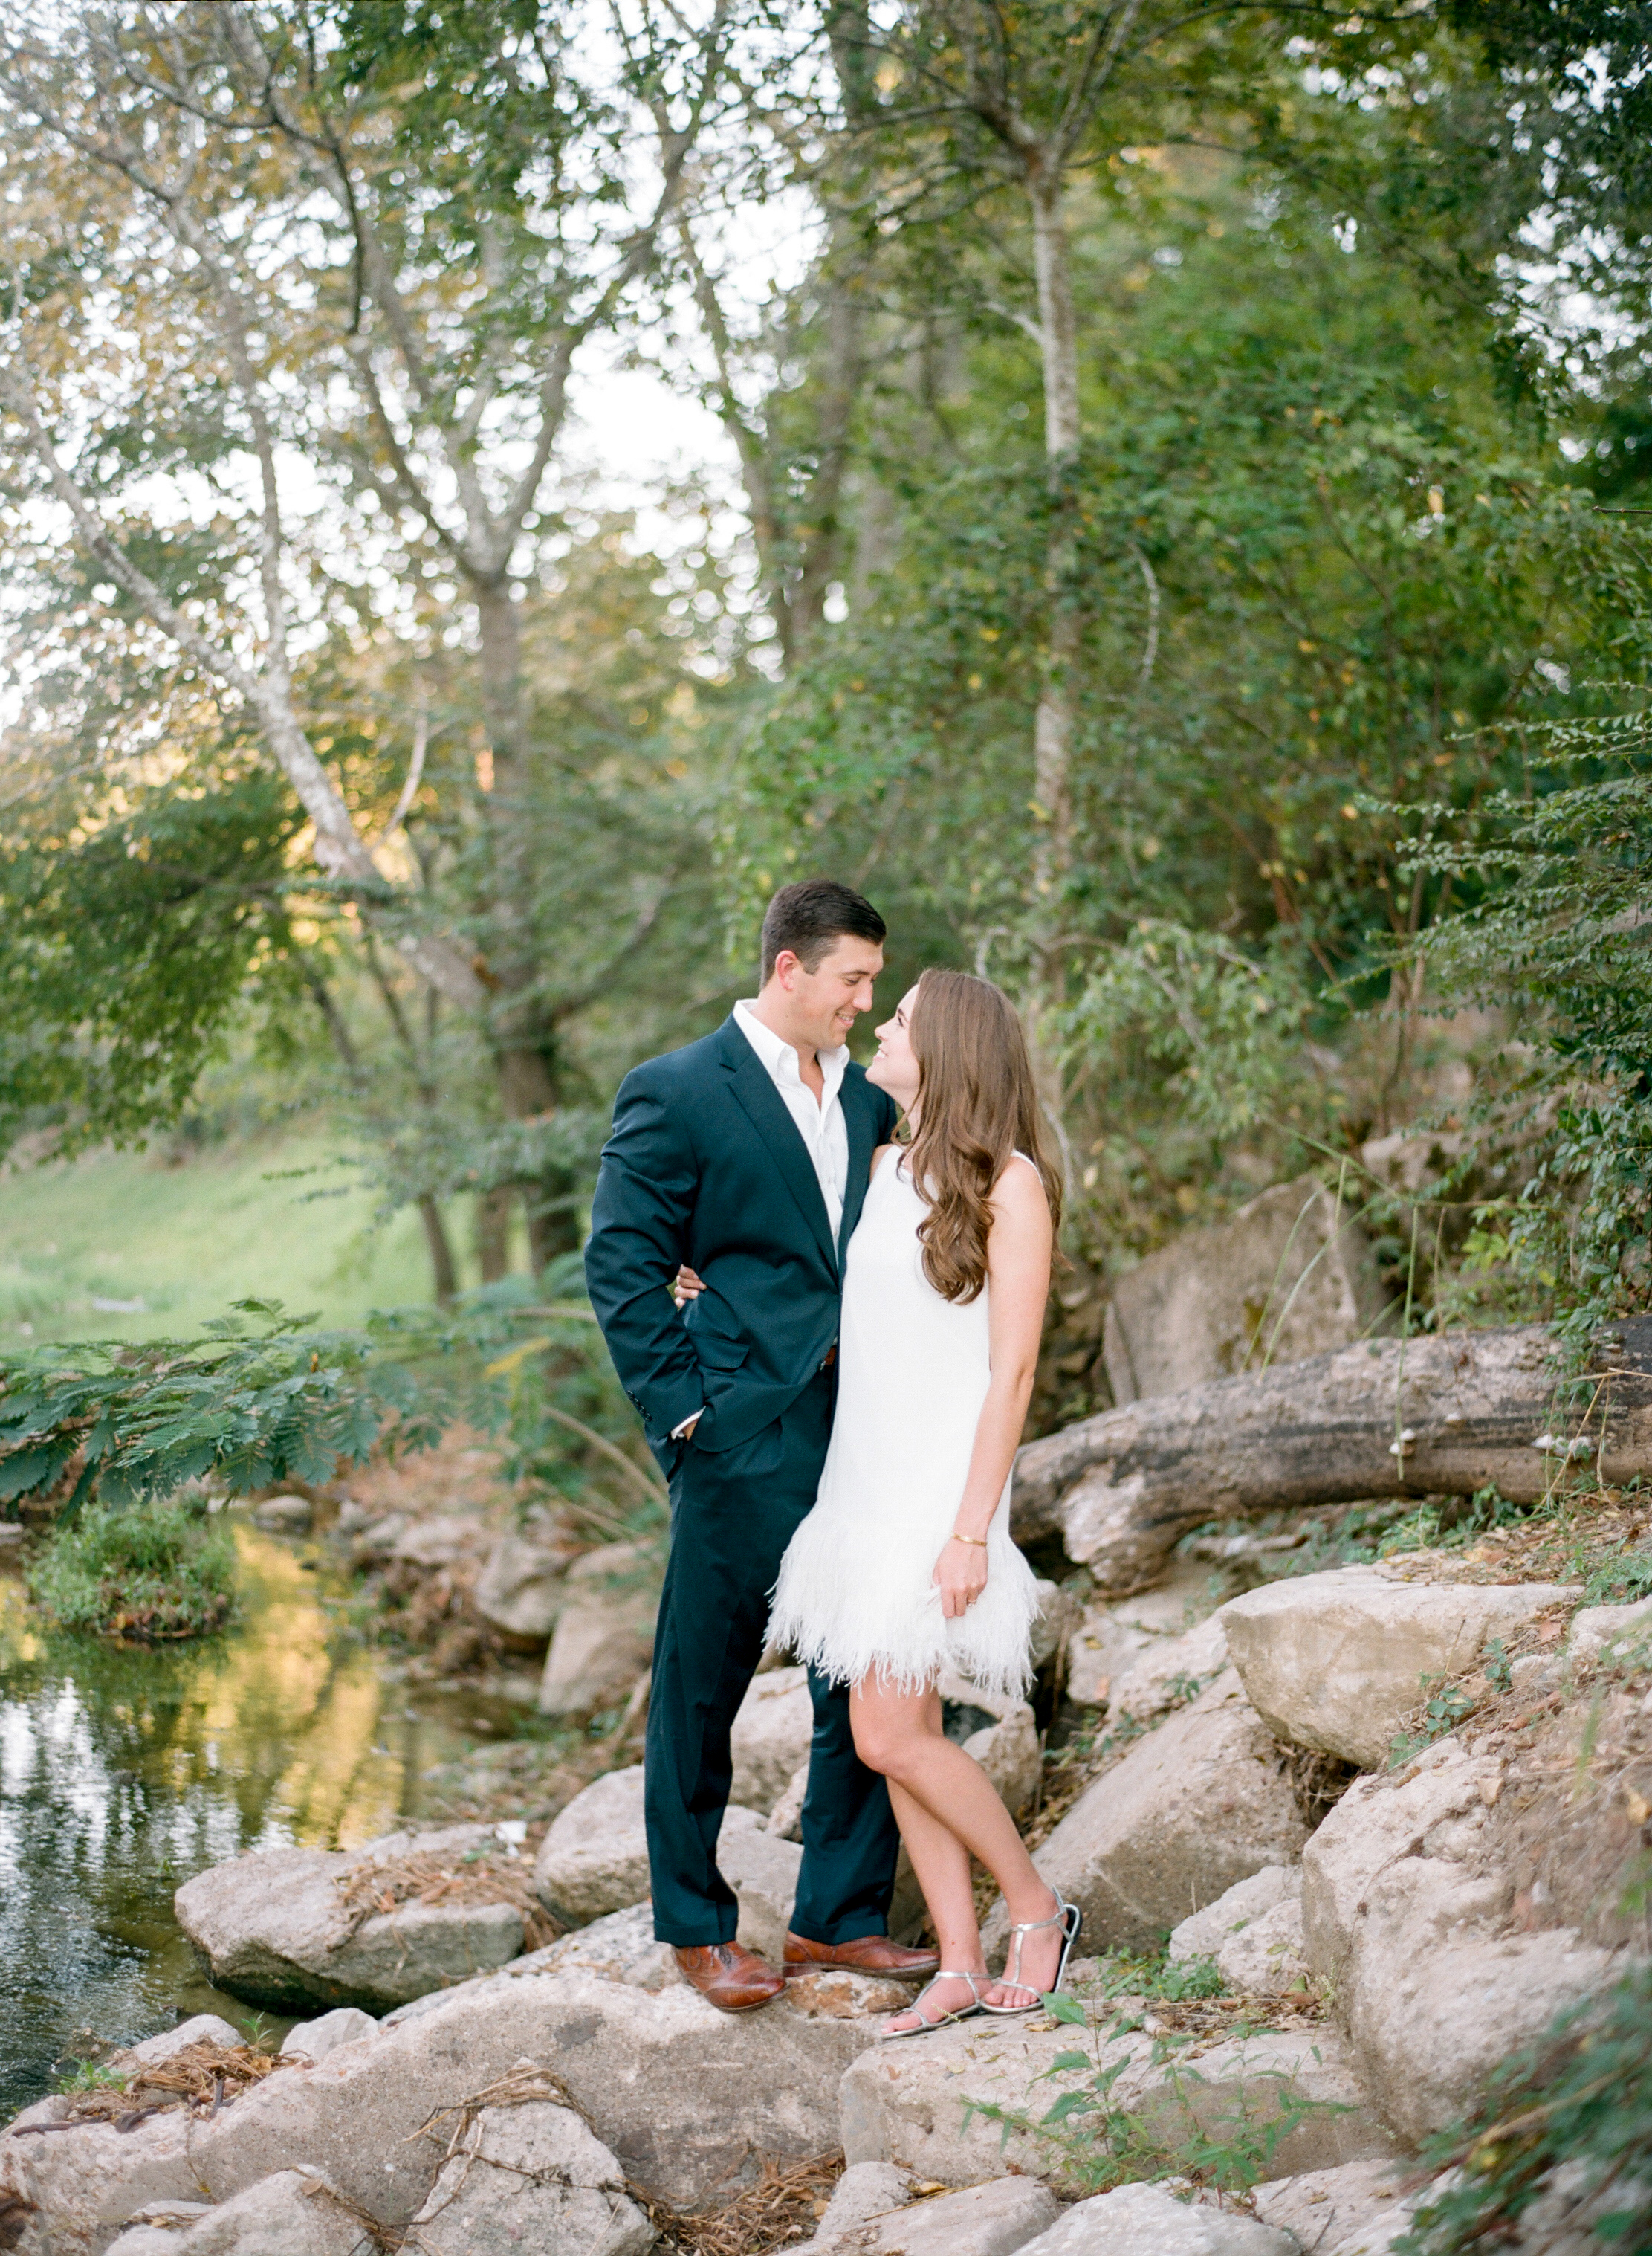 Dana-Fernandez-Photography-Houston-Engagement-Photographer-Film-7.jpg